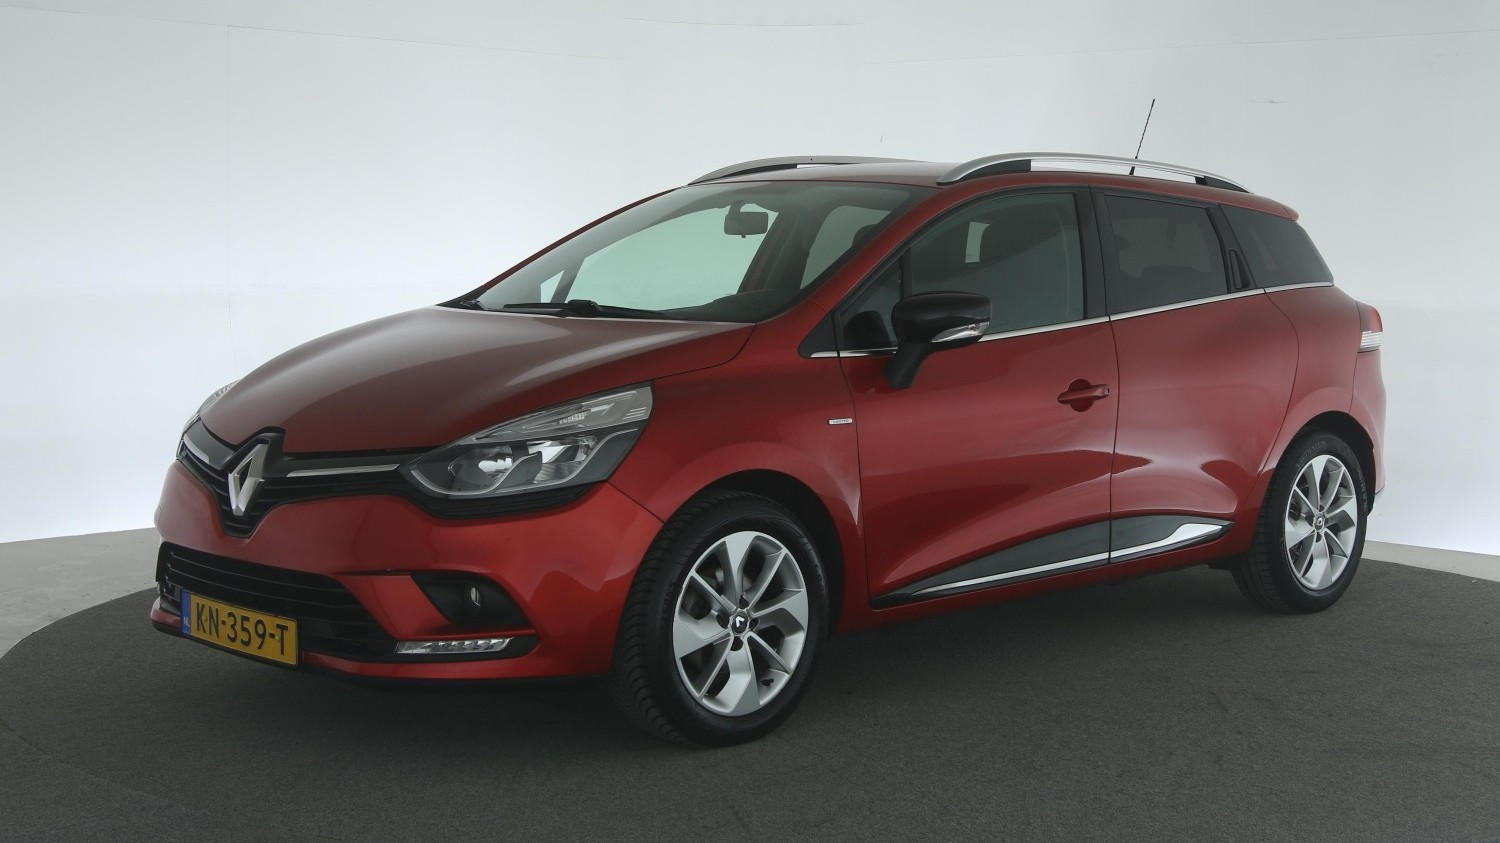 Renault Clio Station 2016 KN-359-T 1